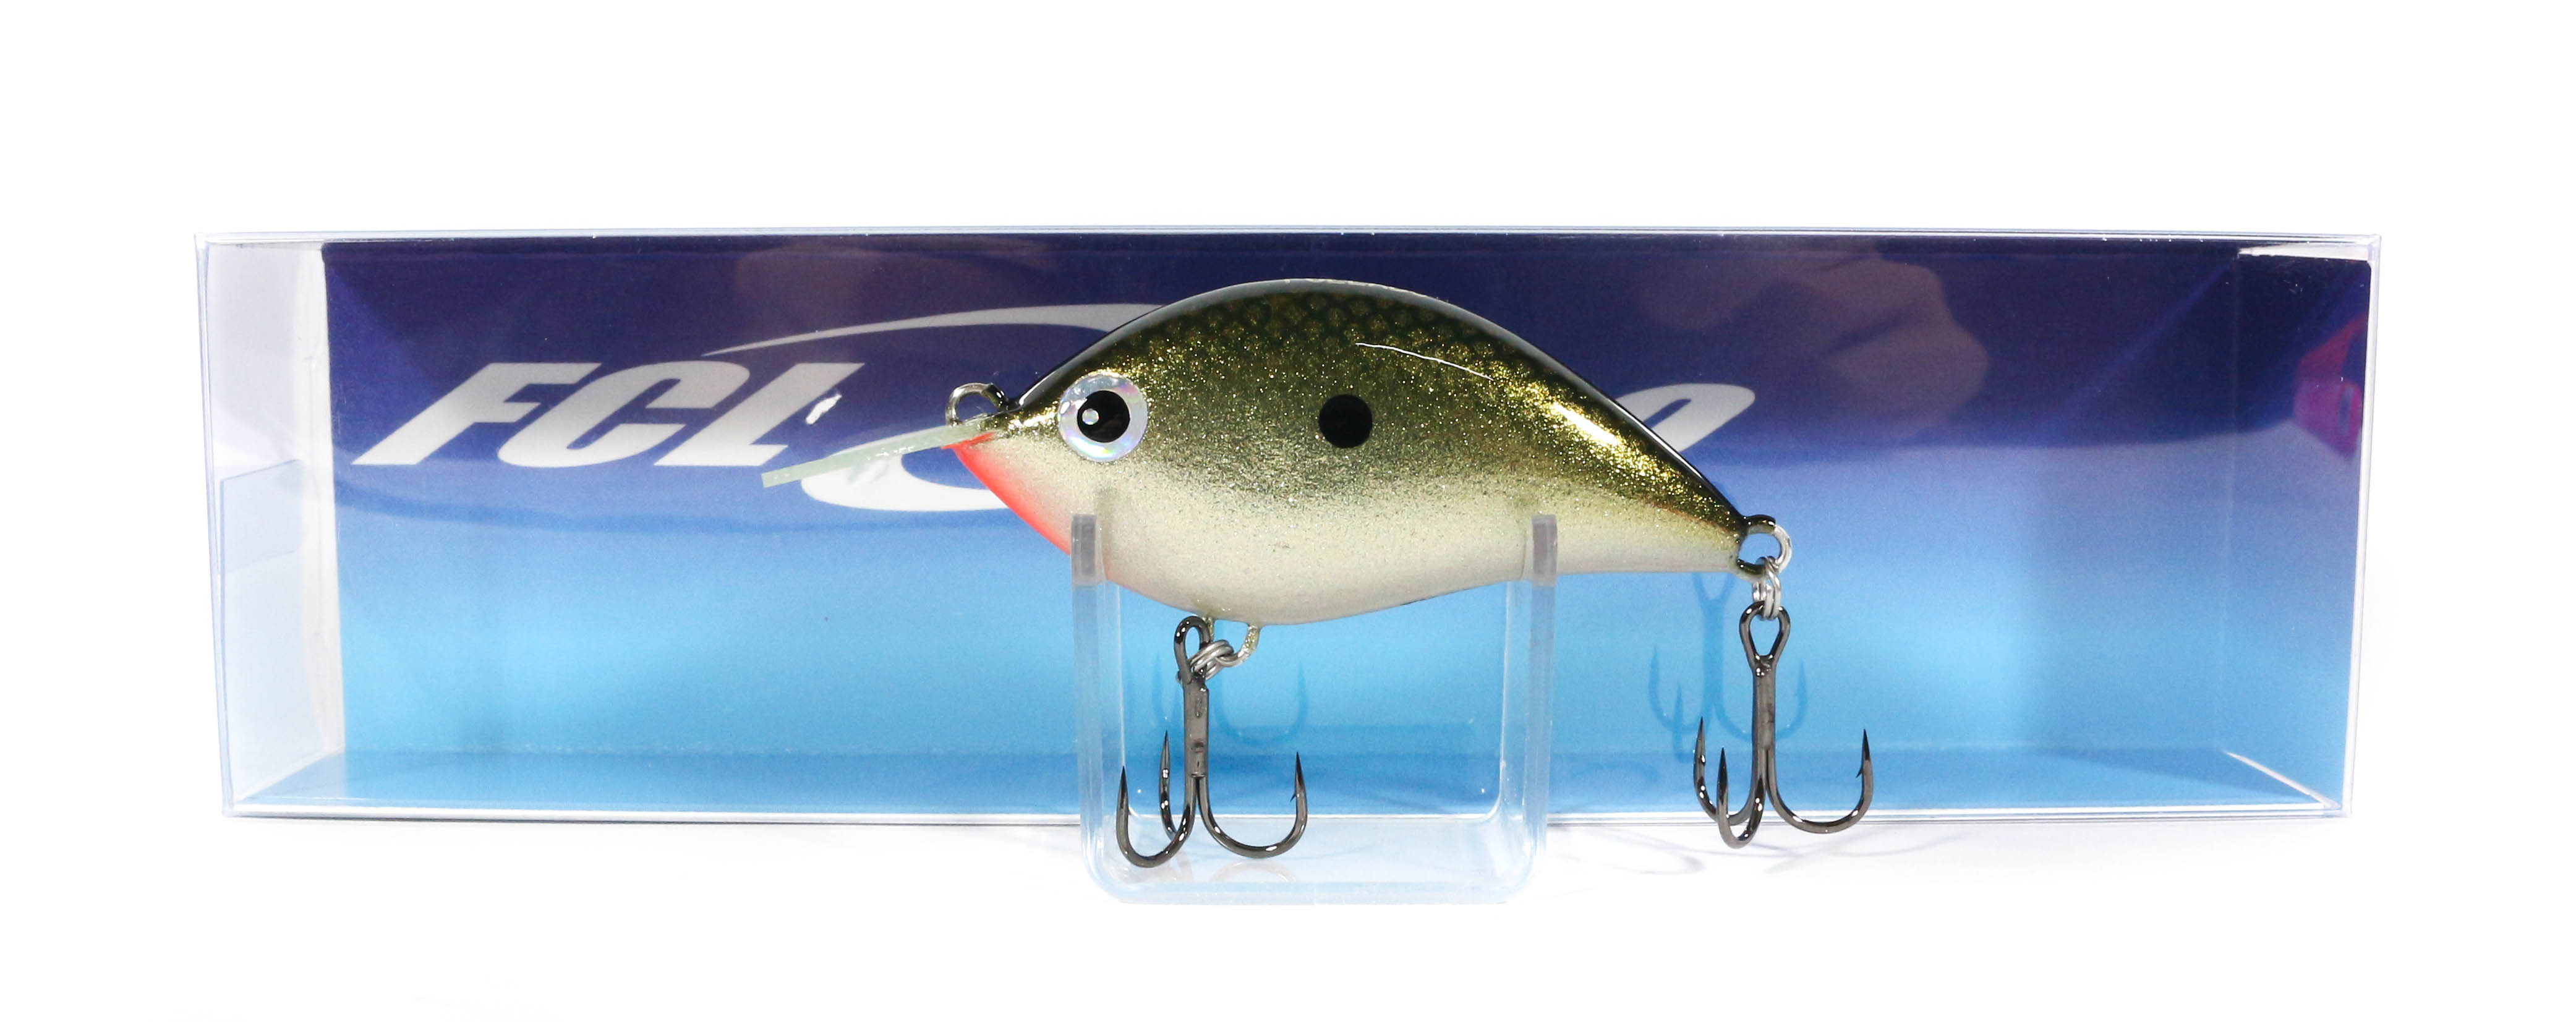 FCL Labo Lure TKC 53 Floating Lure MTS (3788)